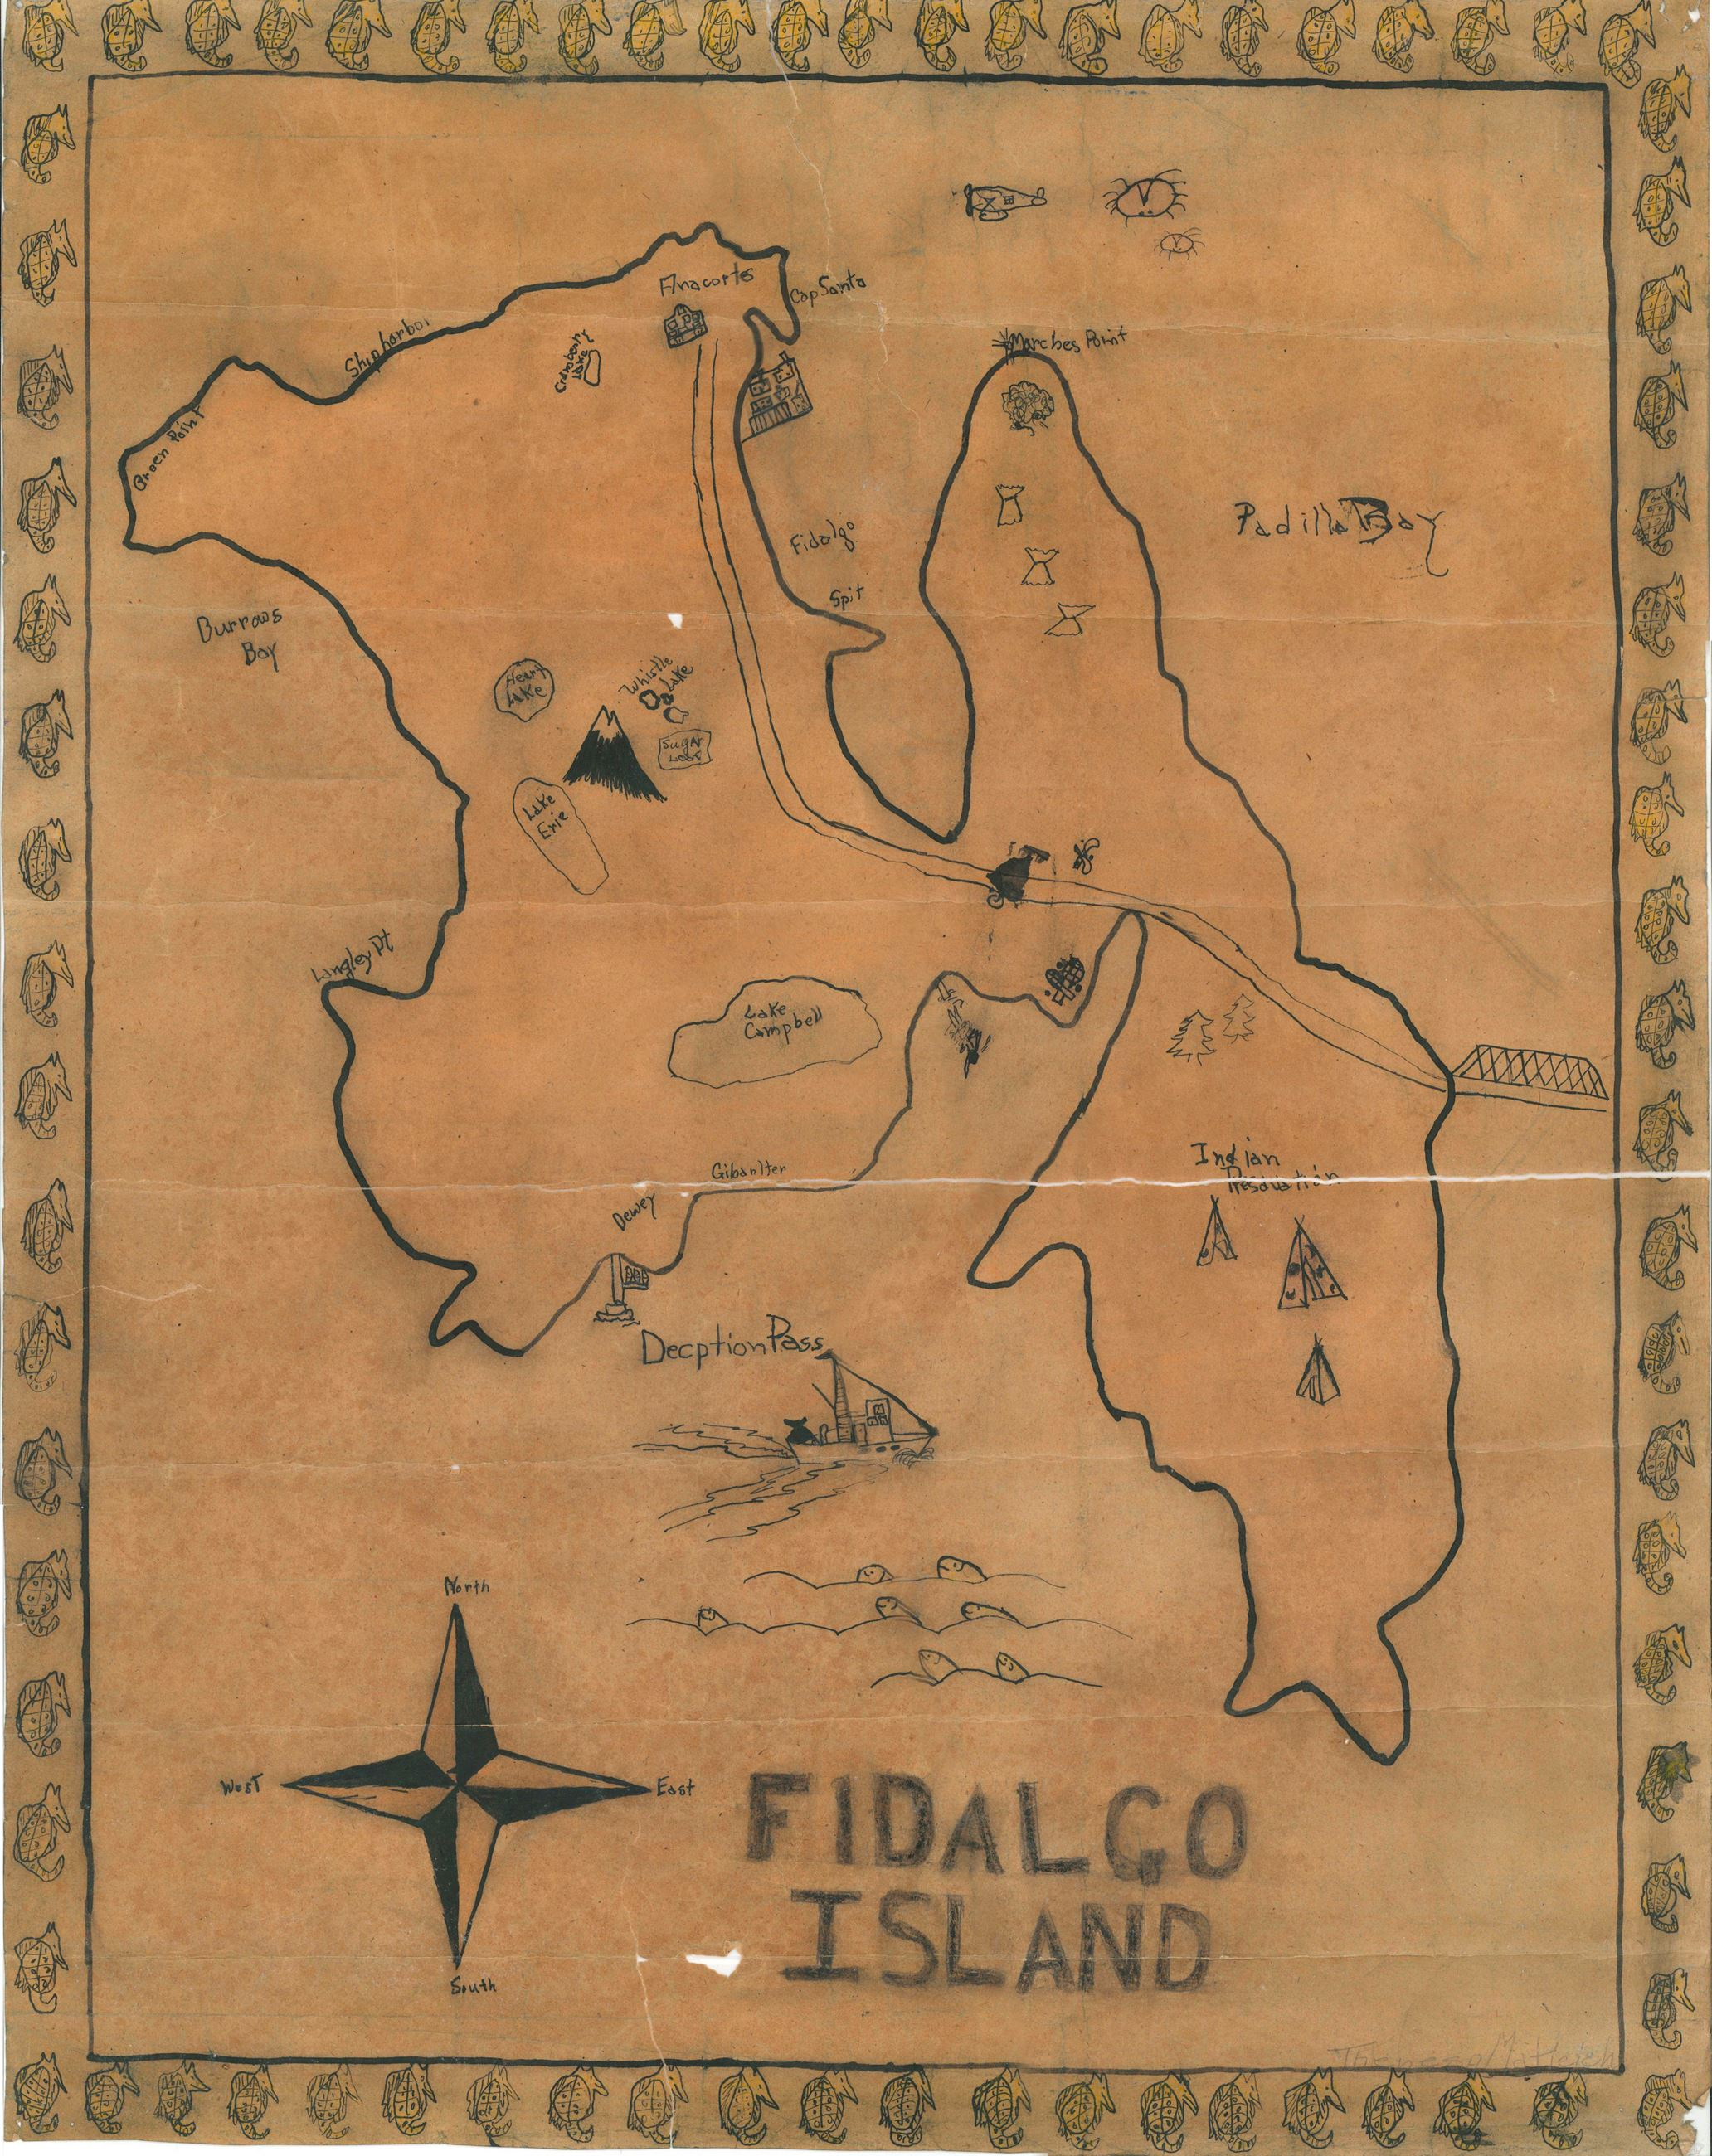 Fidalgo Map